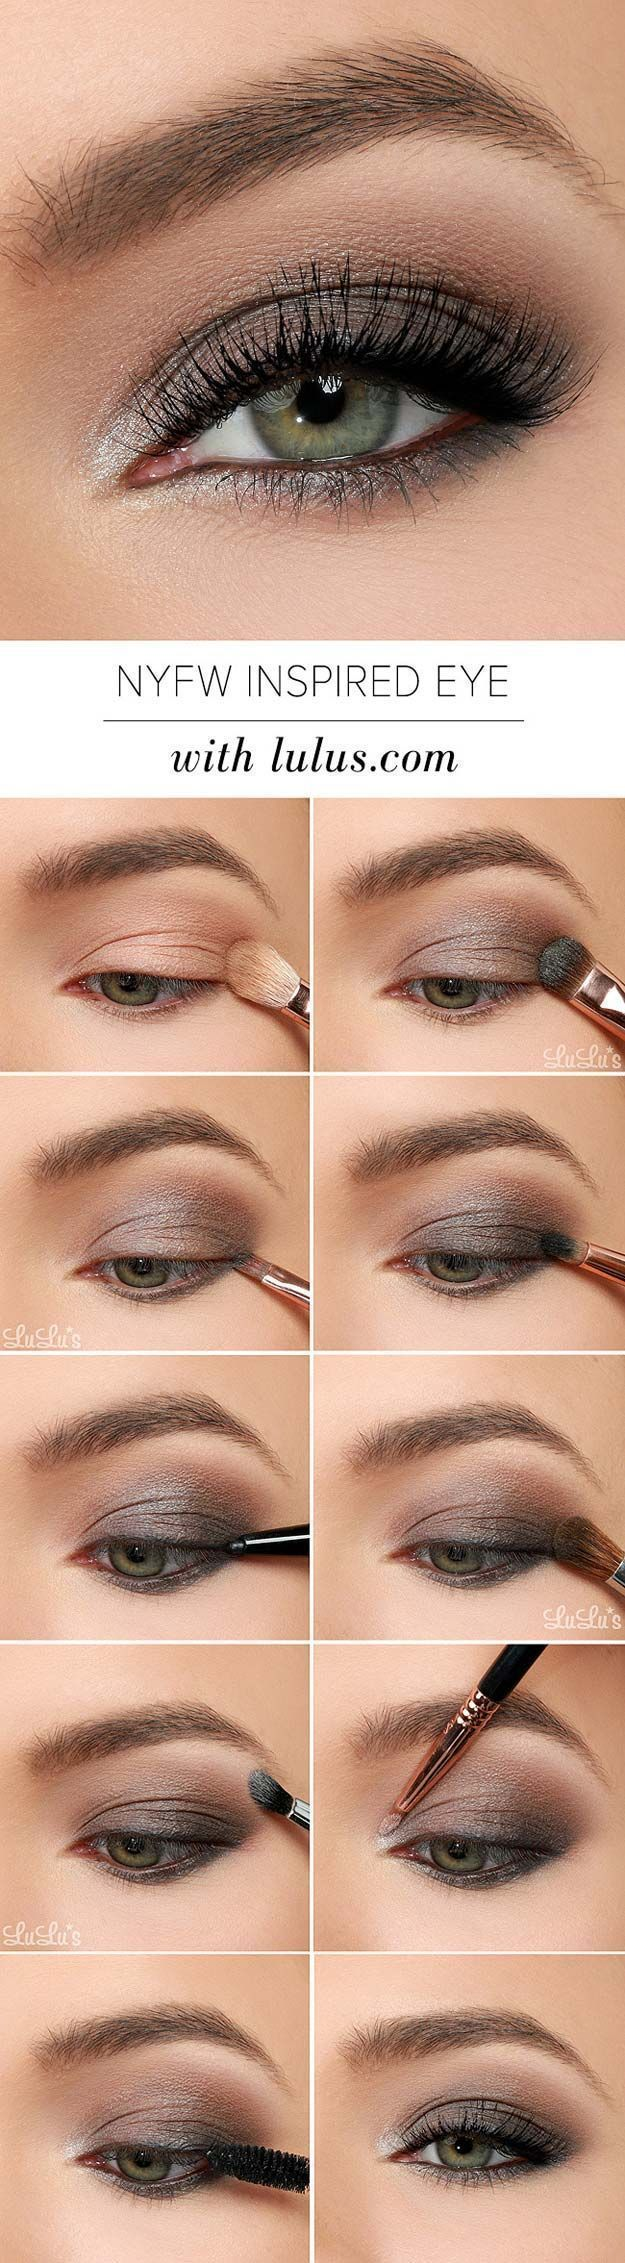 Best Eyeshadow Tutorials - NYFW Inspired Eye Shadow Tutorial - Easy Step by Step How To For Eye Shadow - Cool Makeup Tricks and Eye Makeup Tutorial With Instructions - Quick Ways to Do Smoky Eye, Natural Makeup, Looks for Day and Evening, Brown and Blue Eyes - Cool Ideas for Beginners and Teens http://diyprojectsforteens.com/best-eyeshadow-tutorials #makeuplooksstepbystep #eyeshadowsforbeginners #makeupideasstepbystep